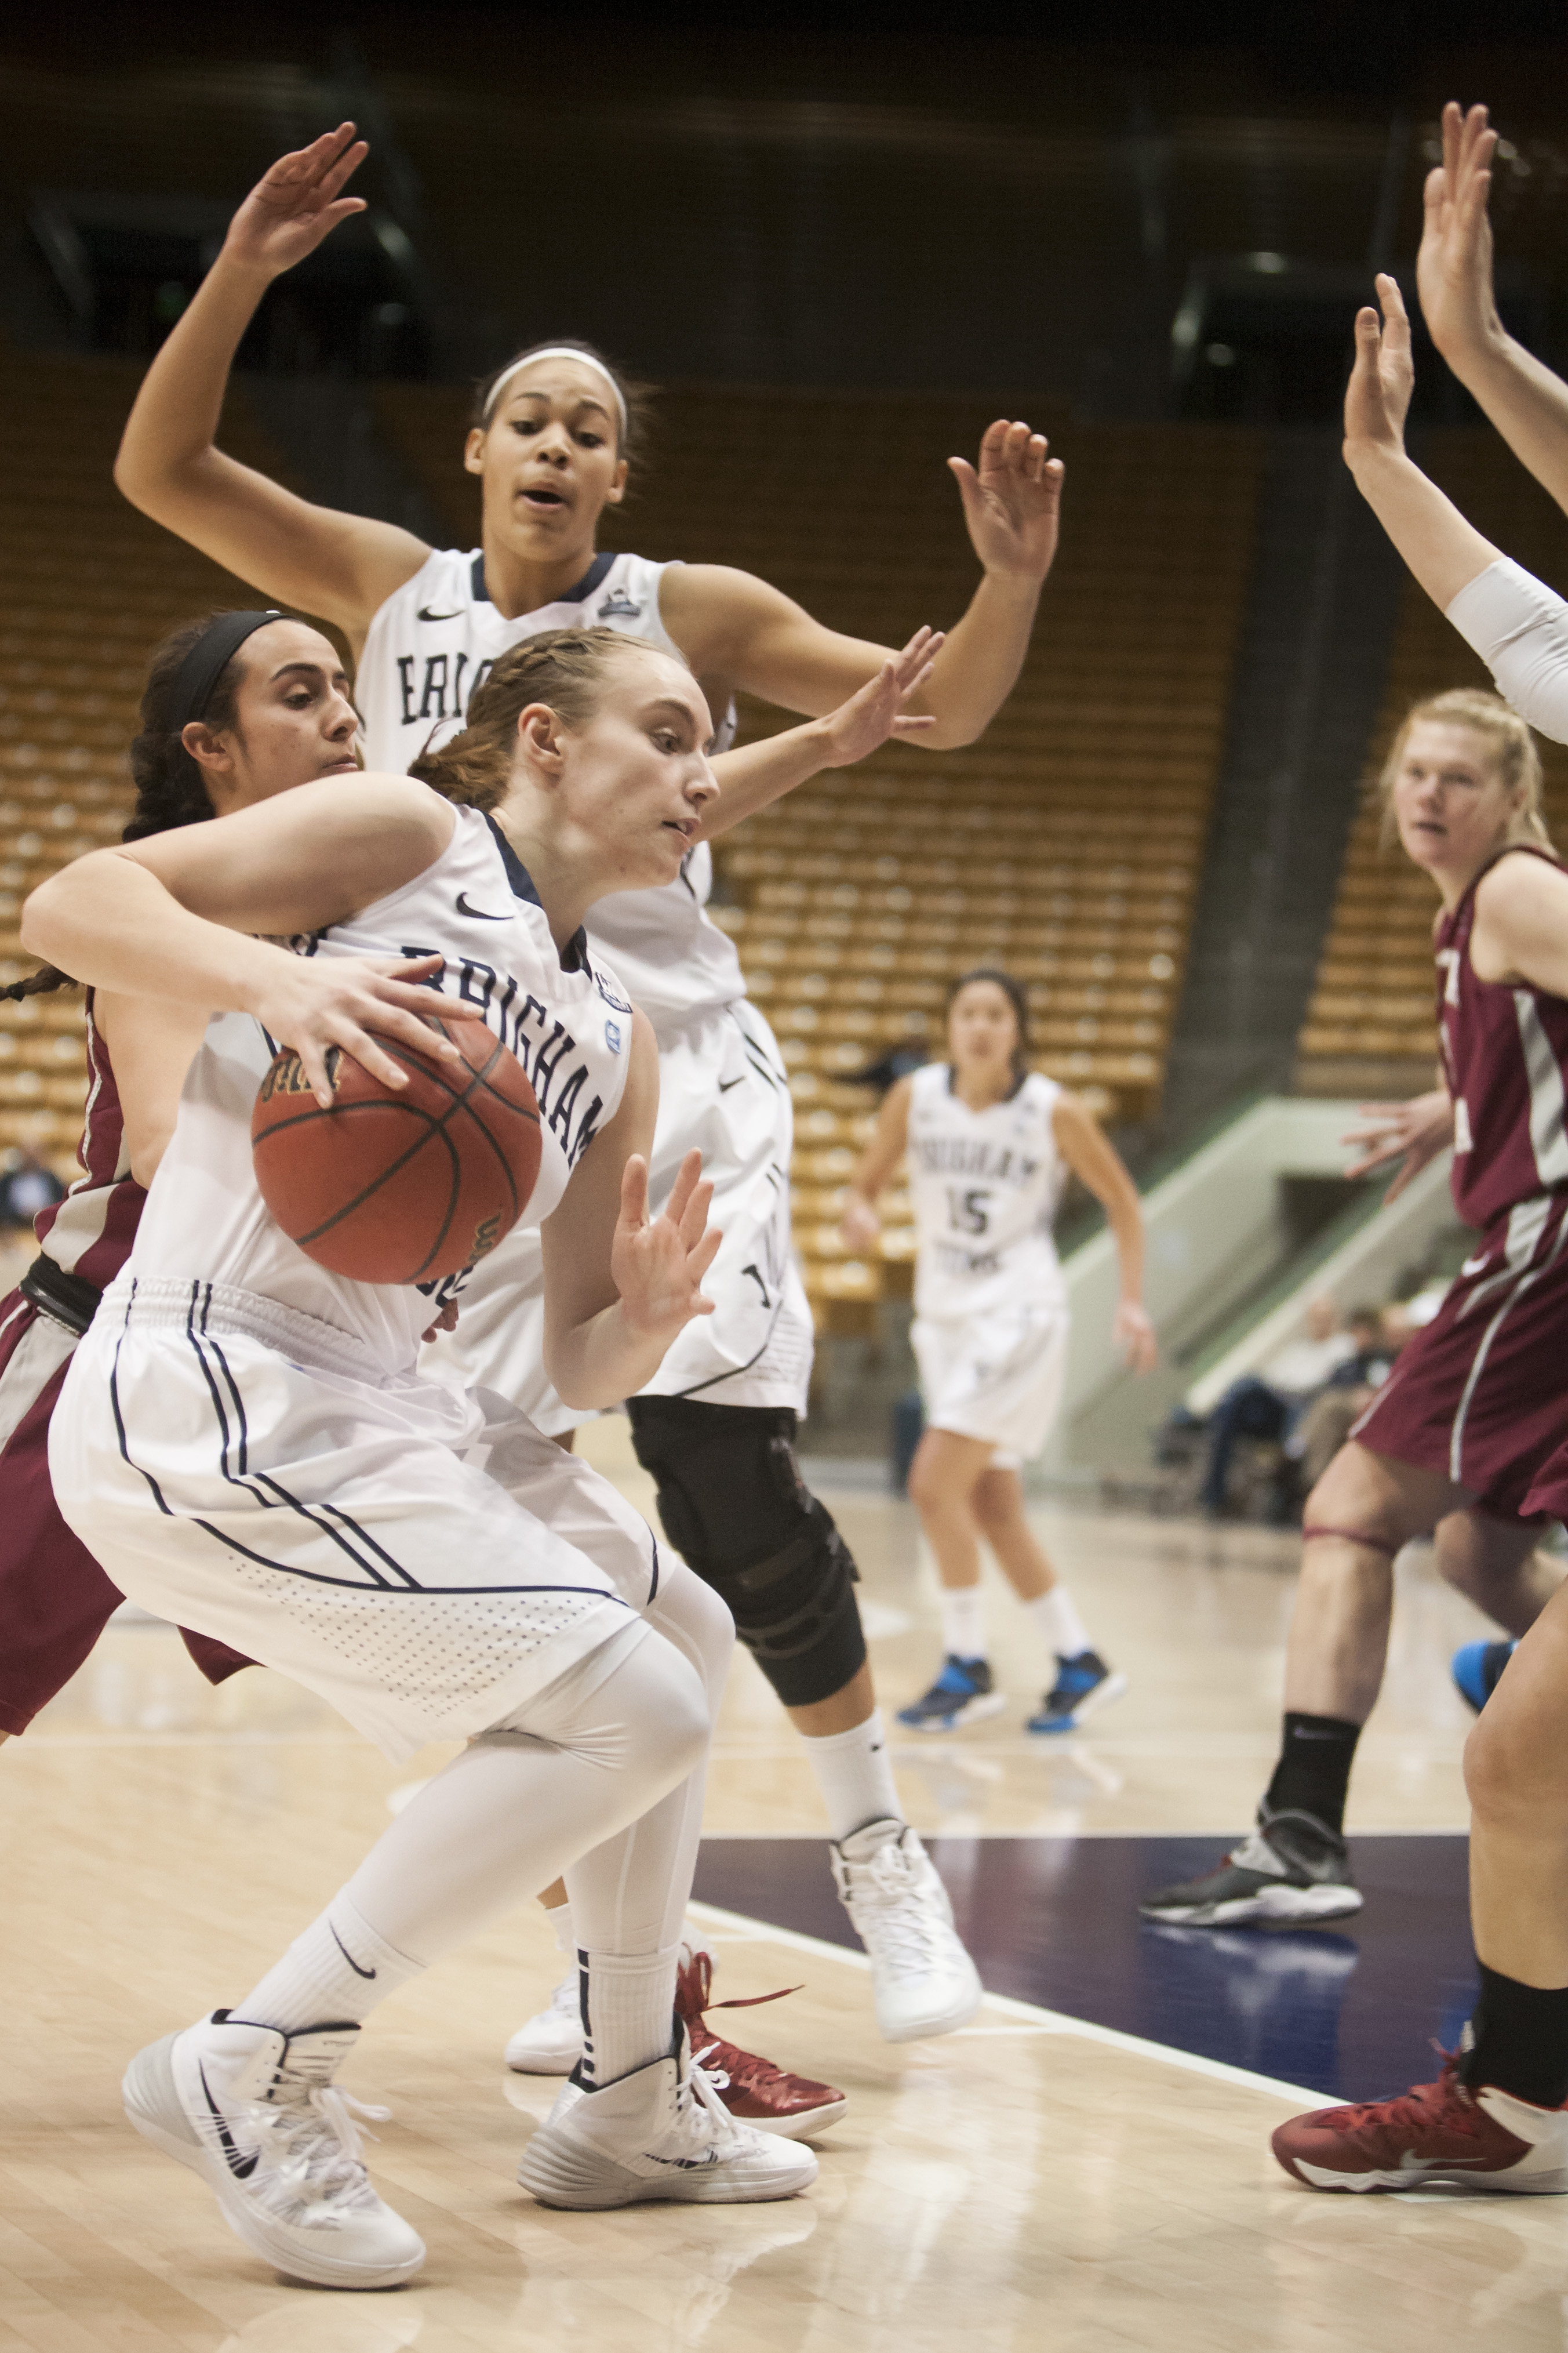 BYU's Lexi Eaton attempts to make her way into the lane for a layup in a game earlier this season. Photo by Universe Photographer.